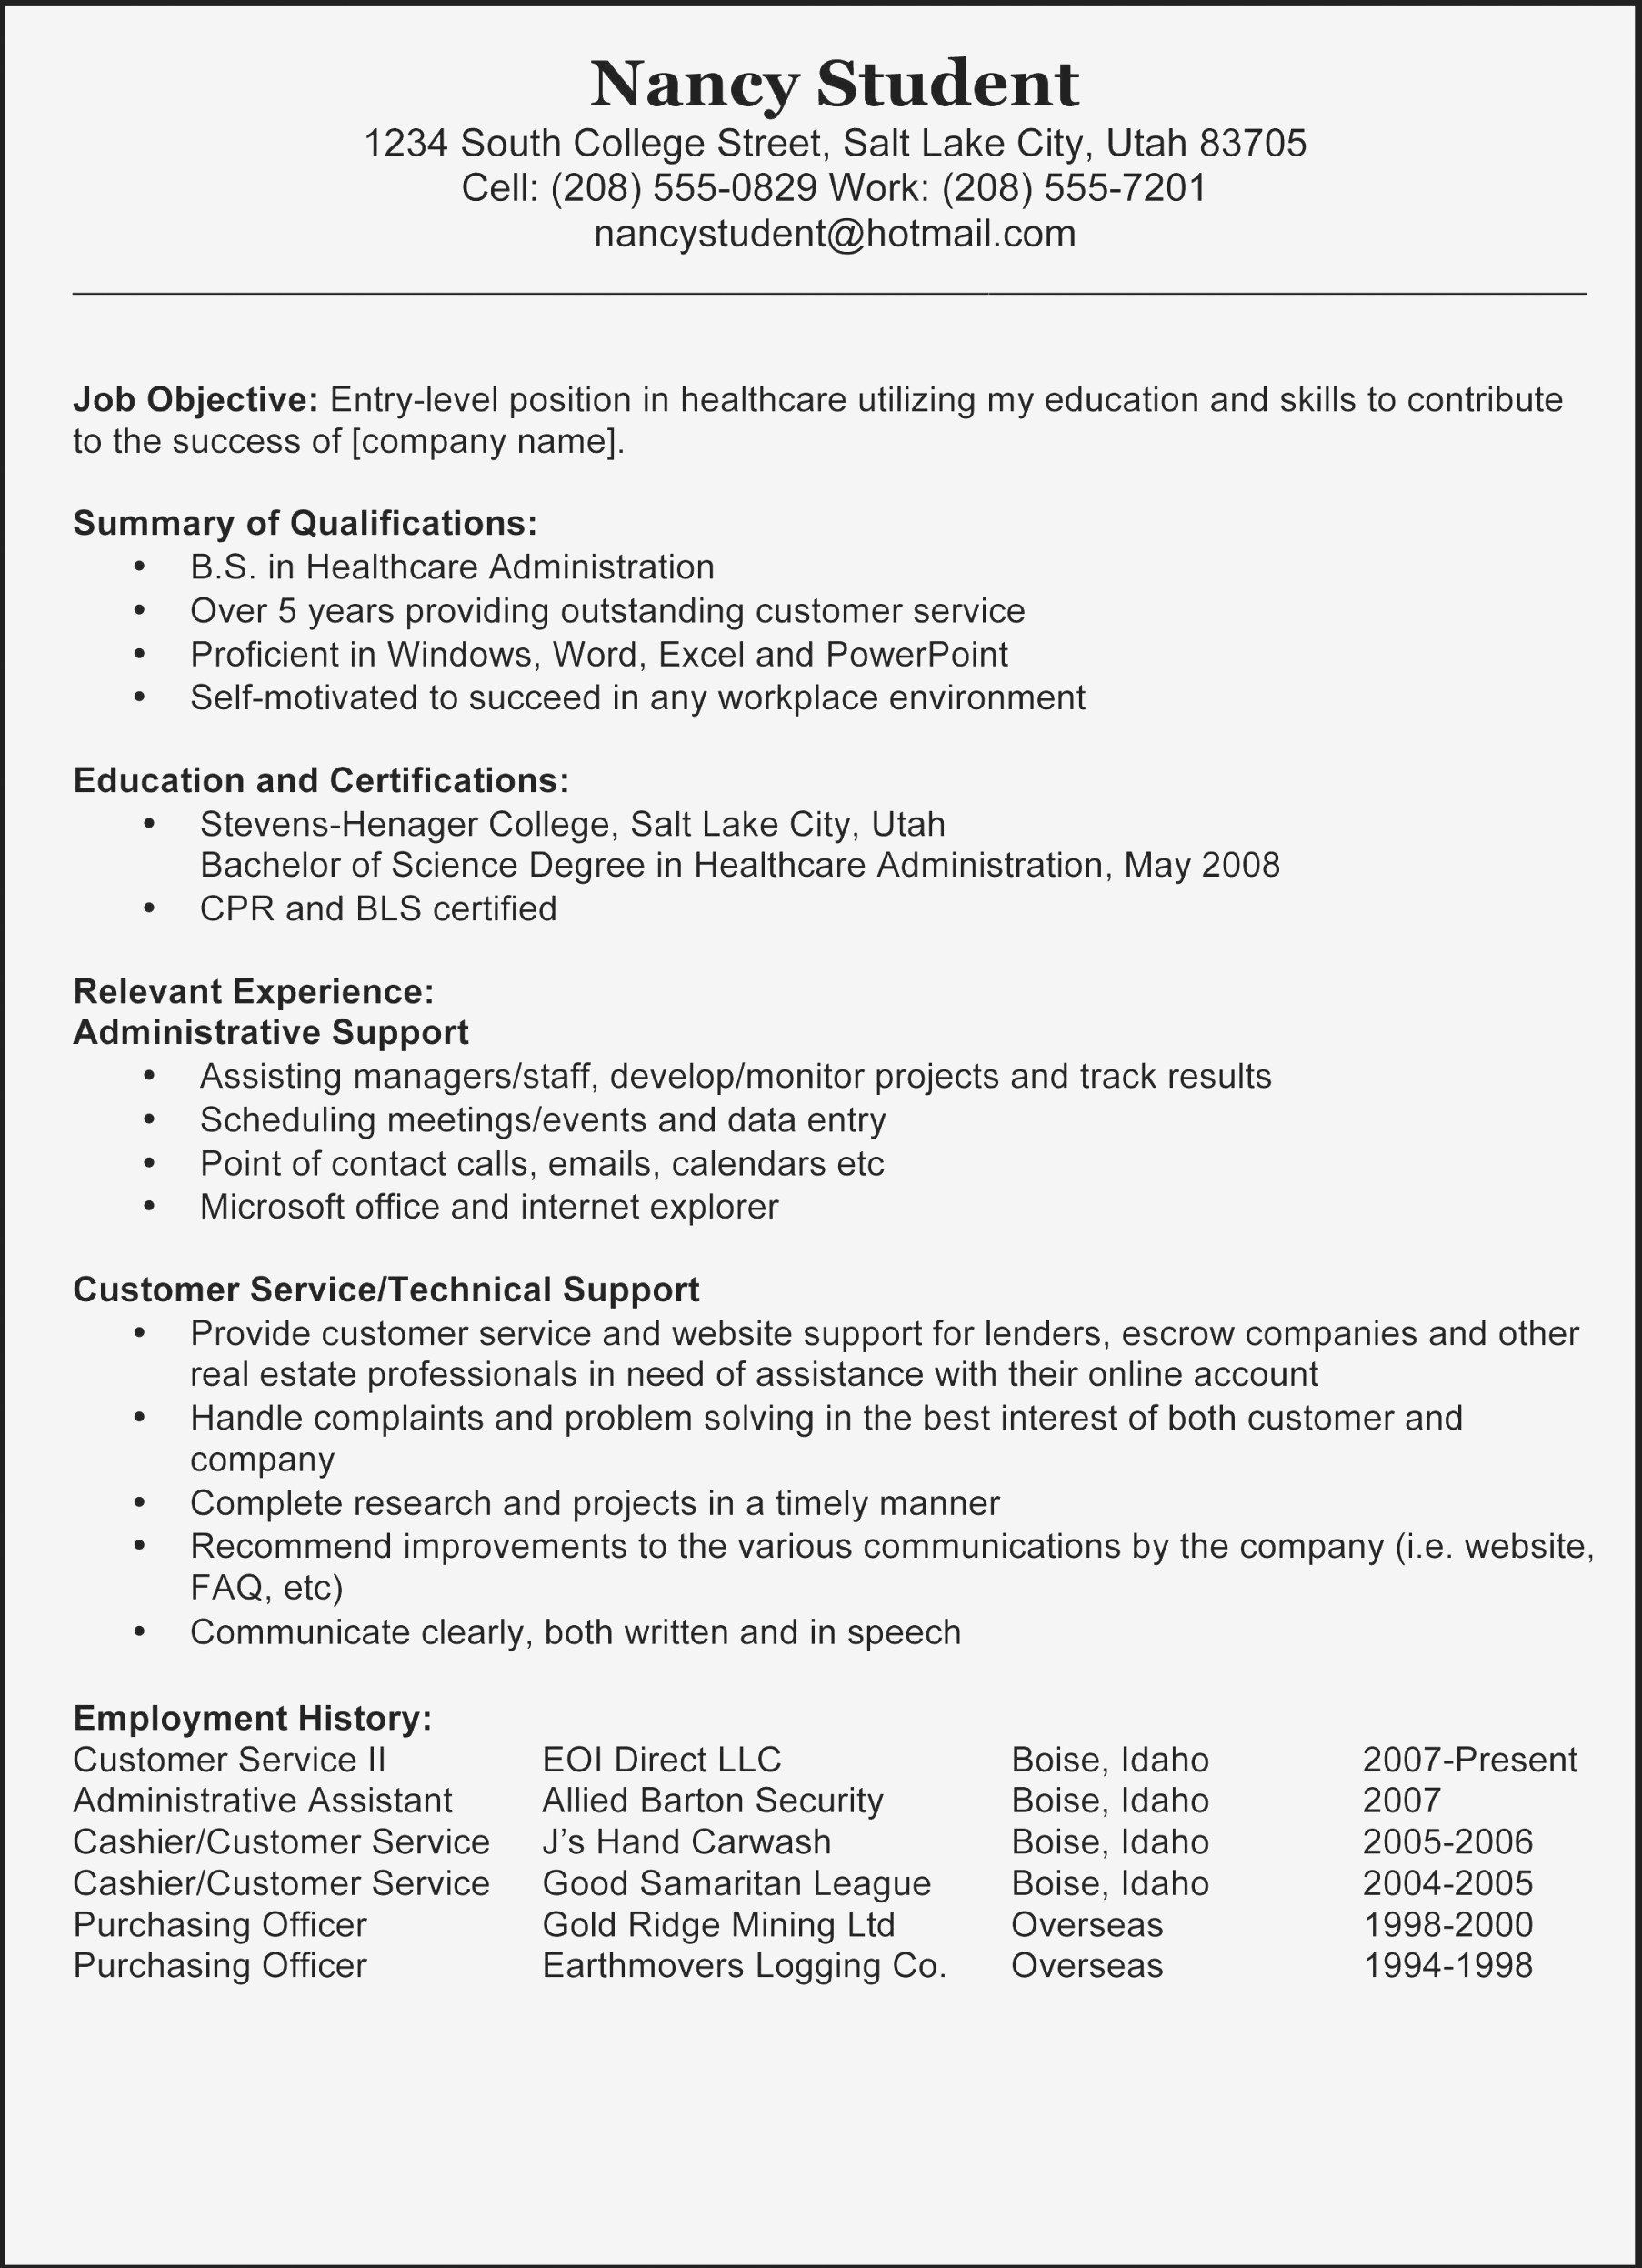 Certified Professional Resume Writers Lovely Resume Objective Help Professional Cv Structure Fre Resume Skills Teacher Resume Examples Medical Assistant Resume